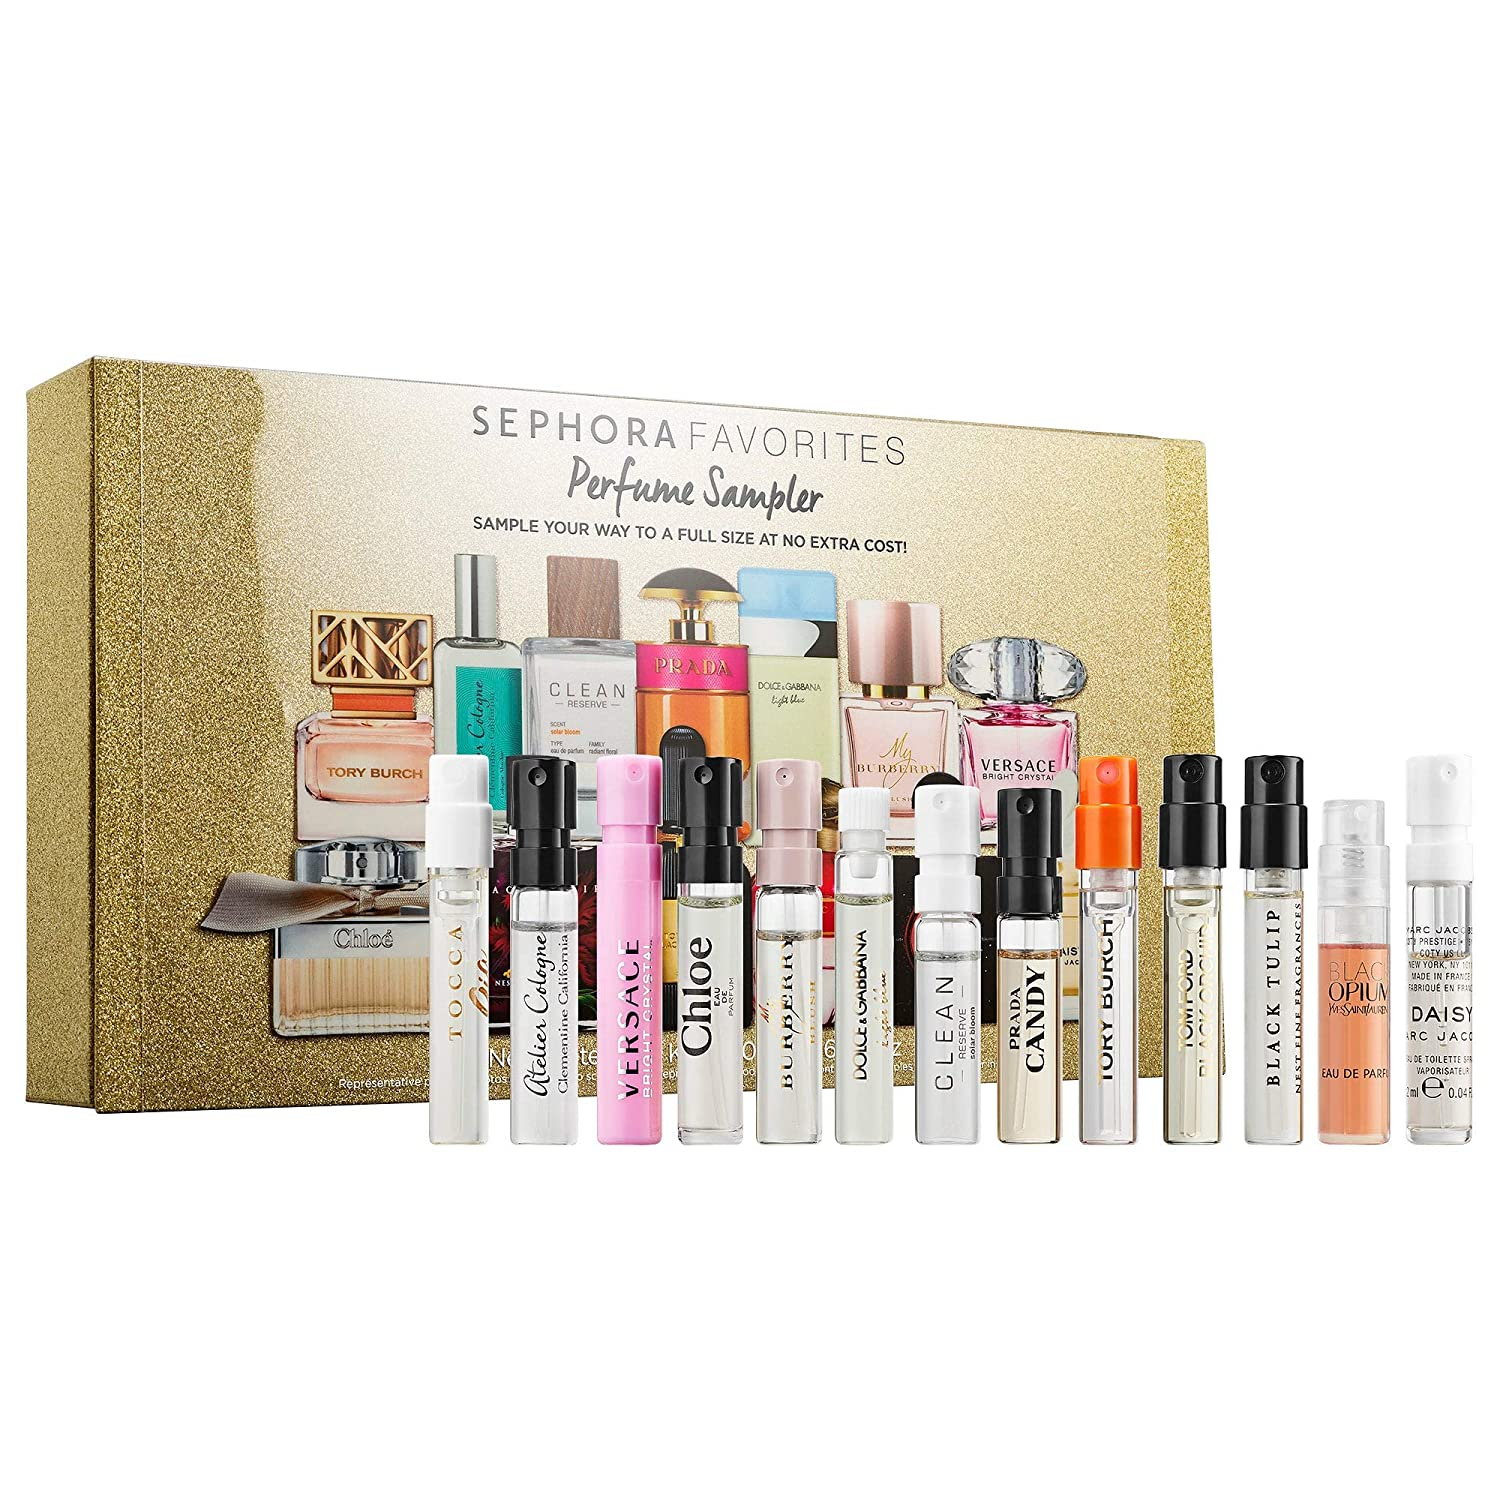 NIB Holiday Perfume Sampler 2019 With Free Sample!!